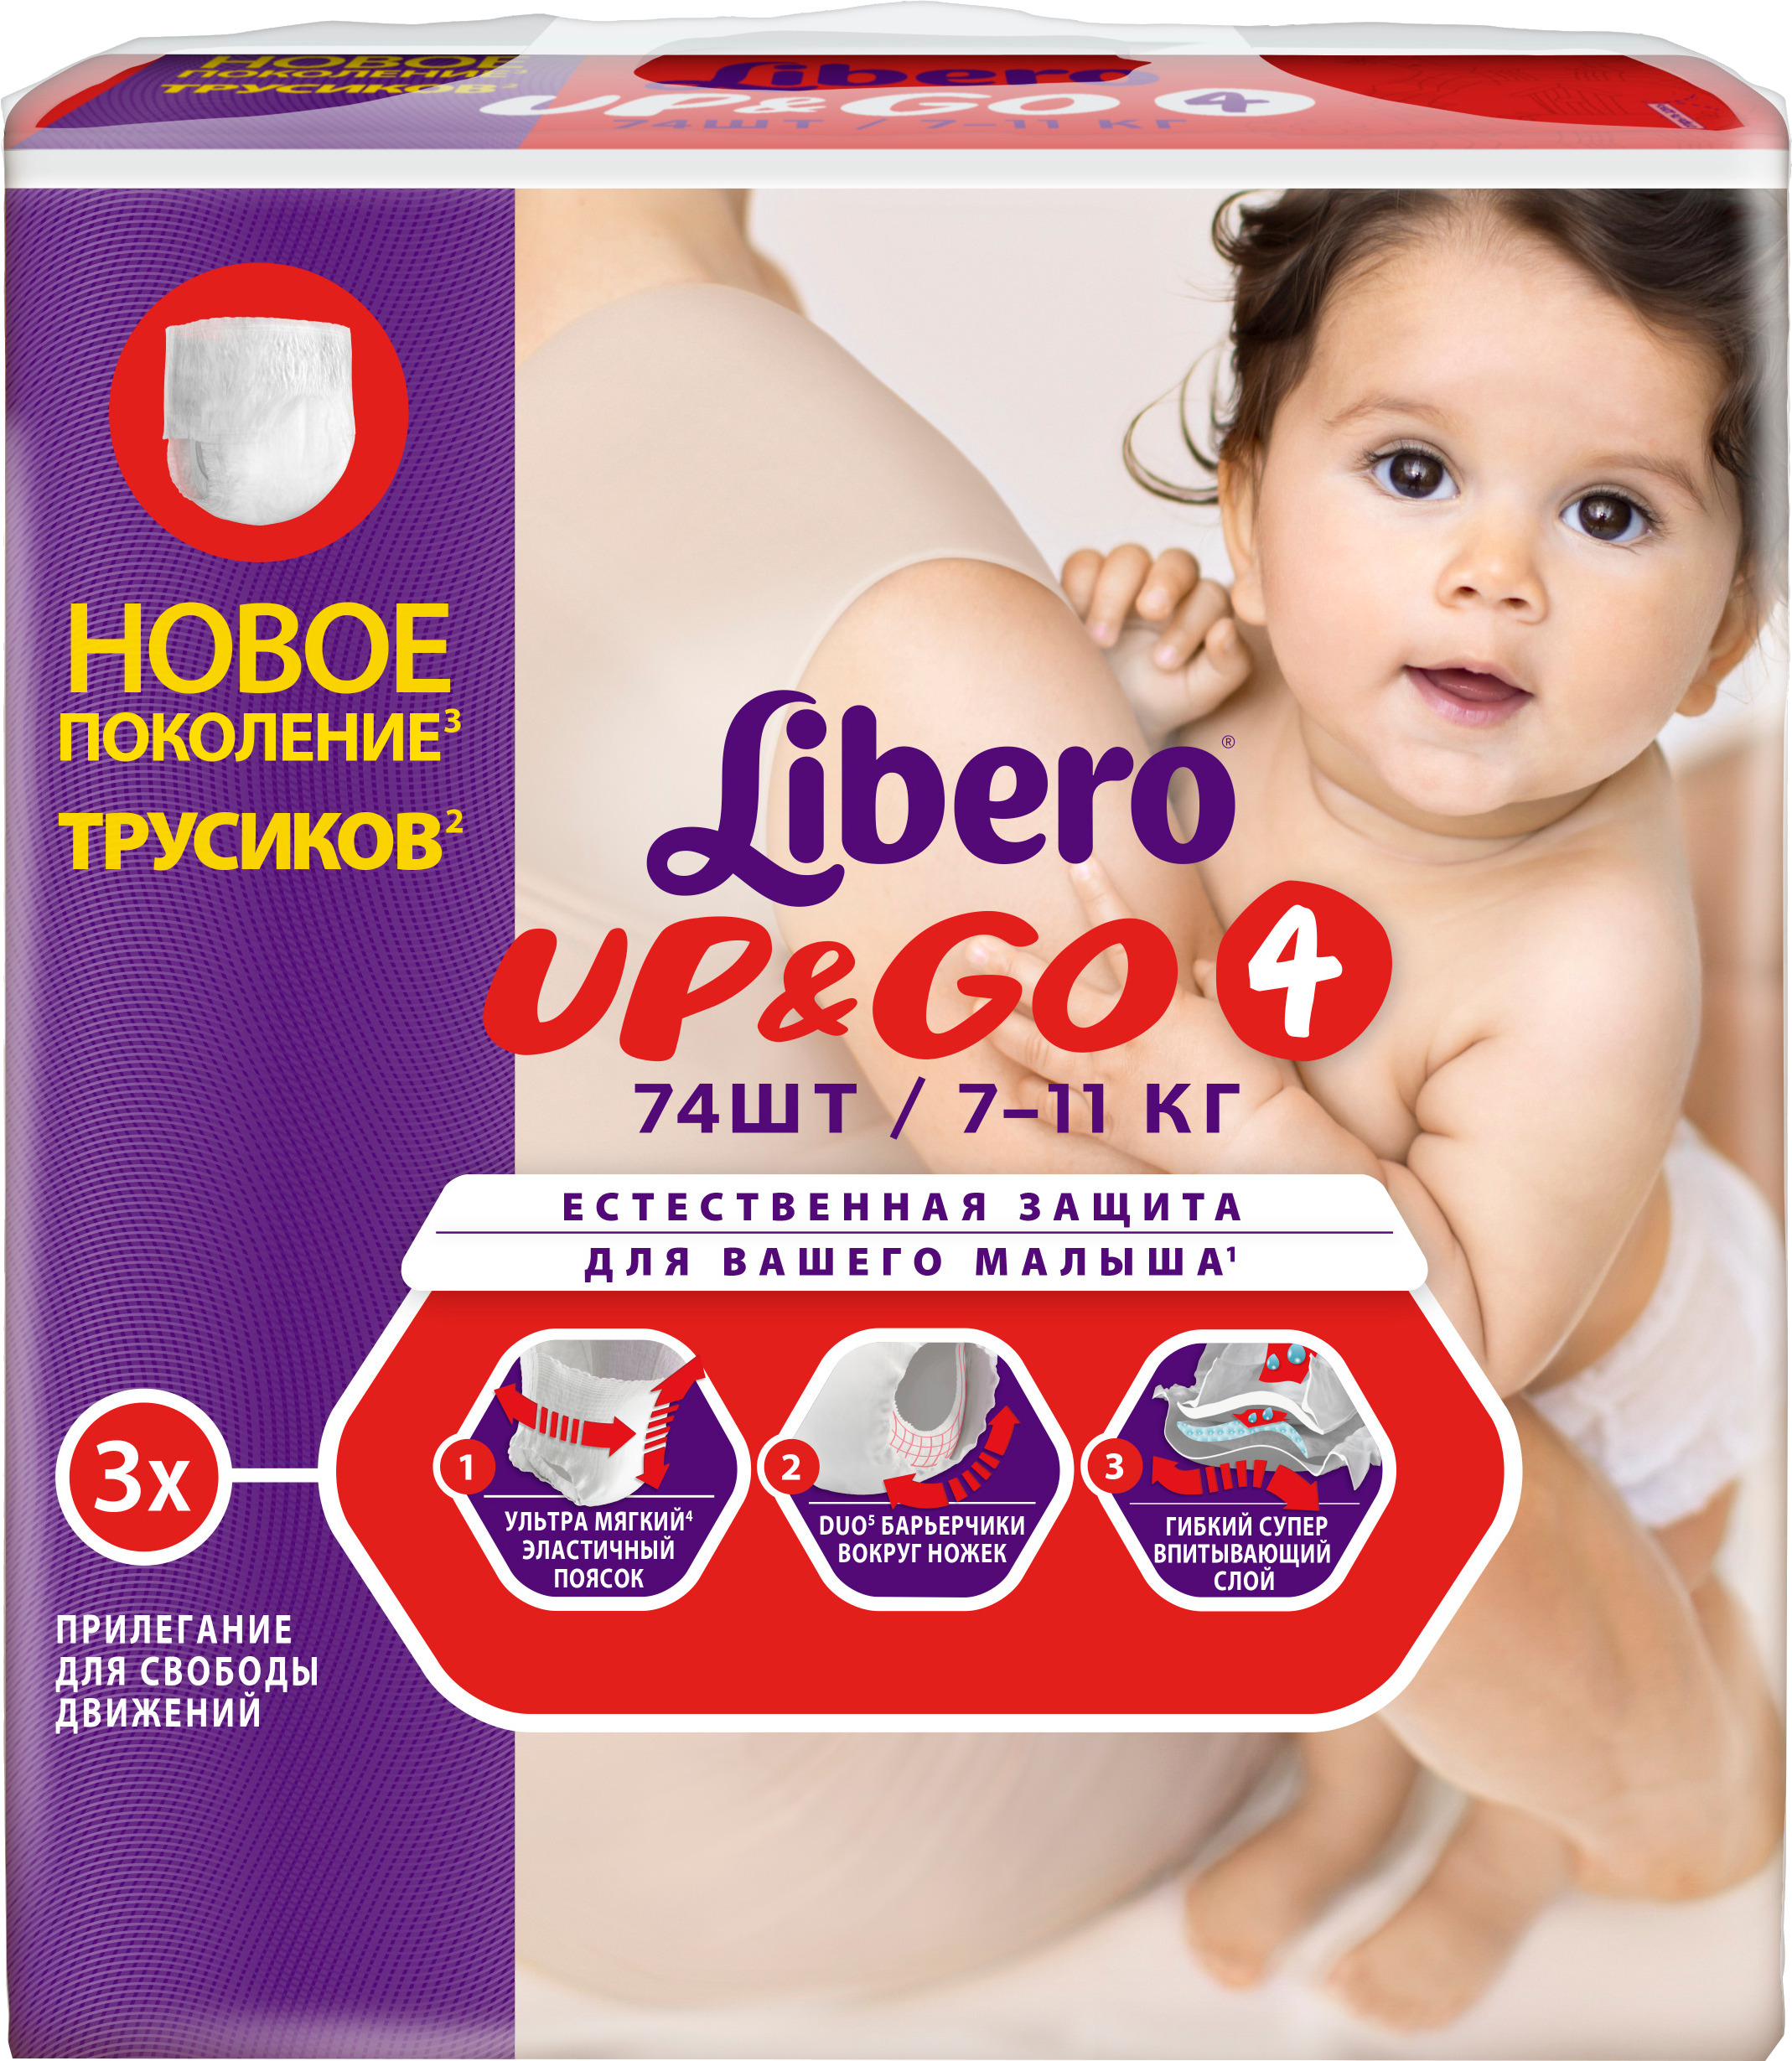 Up & Go 4 (7-11 кг) 74 шт 01.00.22.5519